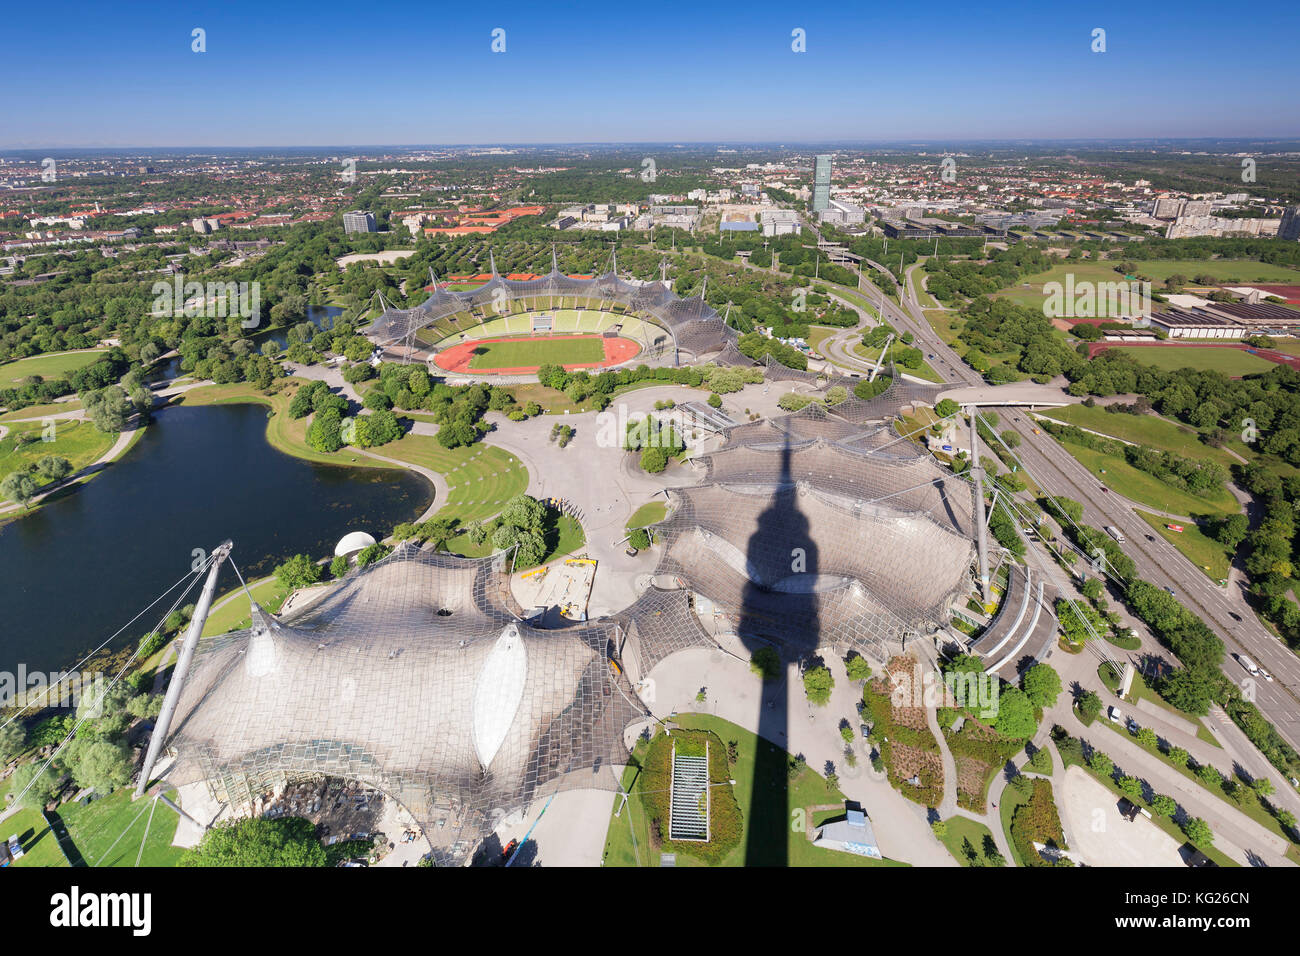 View from Olympic Tower (Olympiaturm) at Olympic stadium at Olympic Park, Munich, Bavaria, Germany, Europe - Stock Image